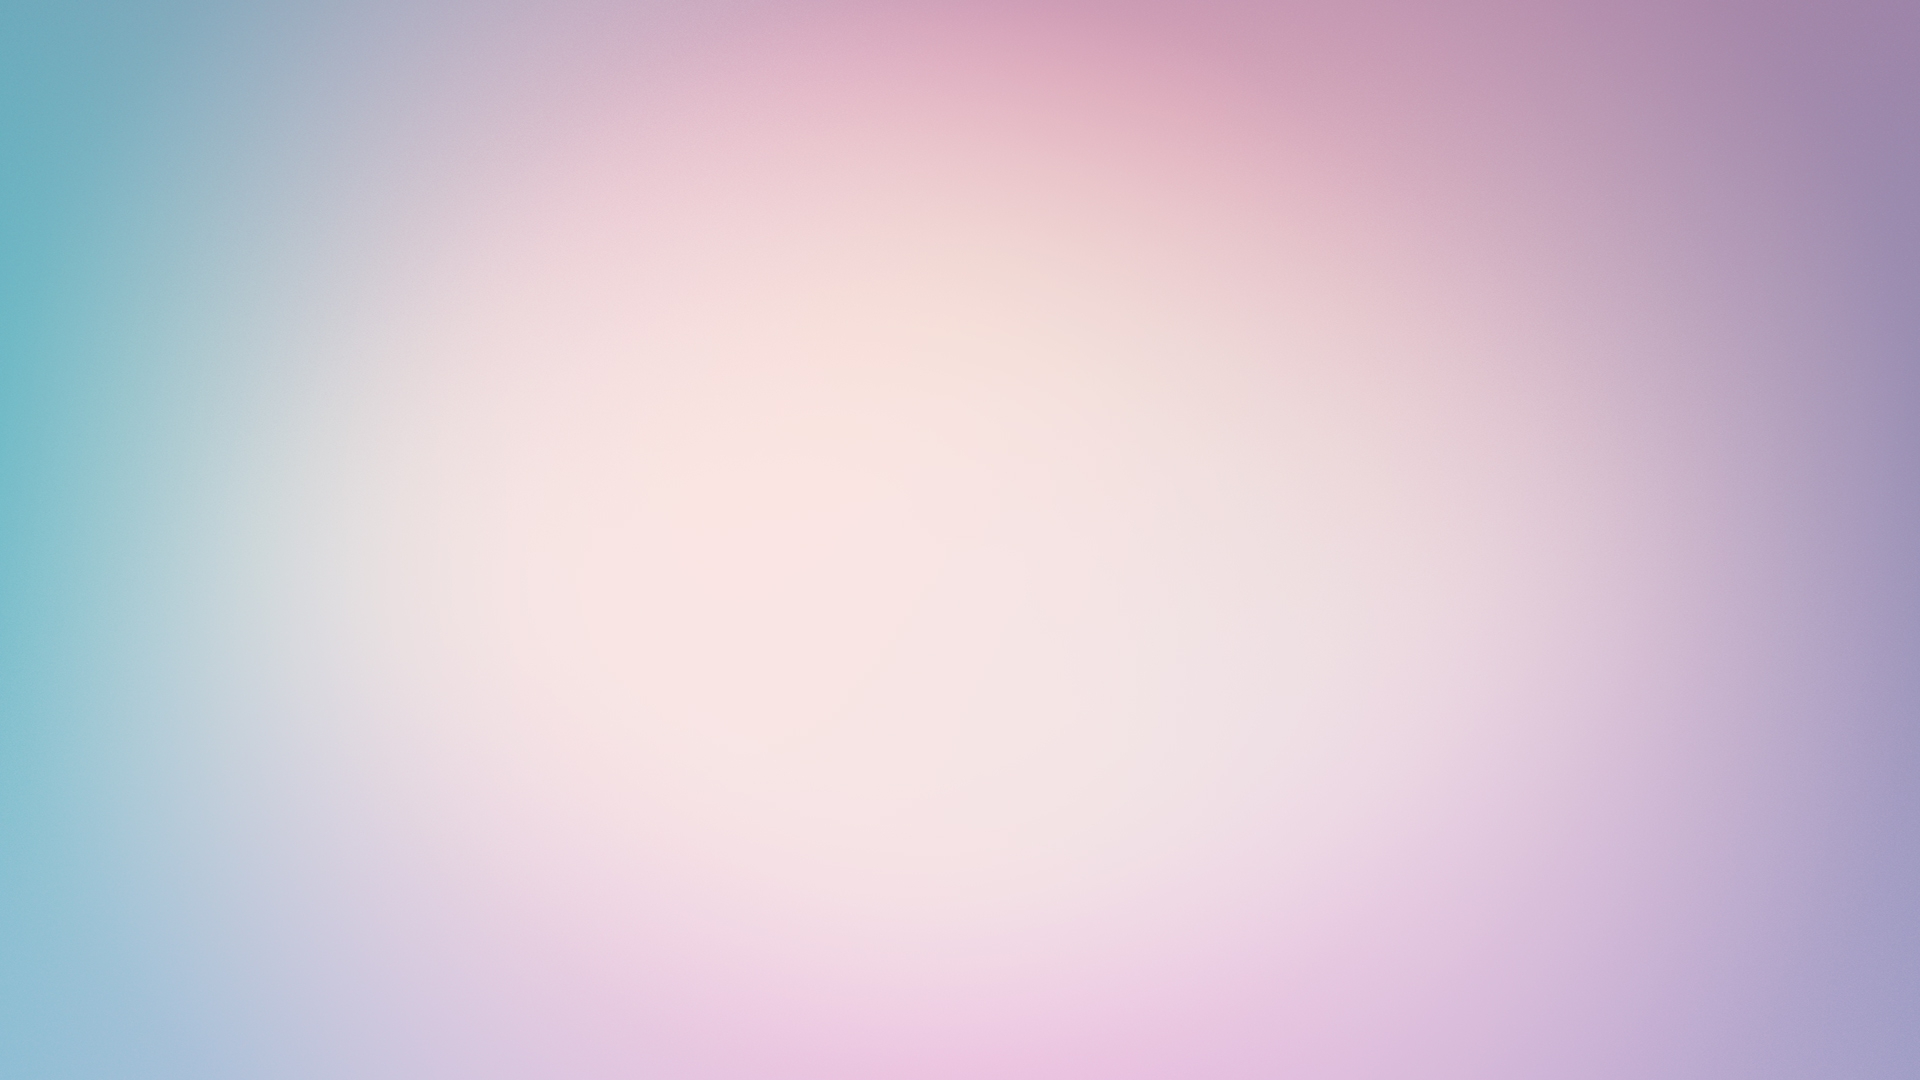 wallpaper plain pink